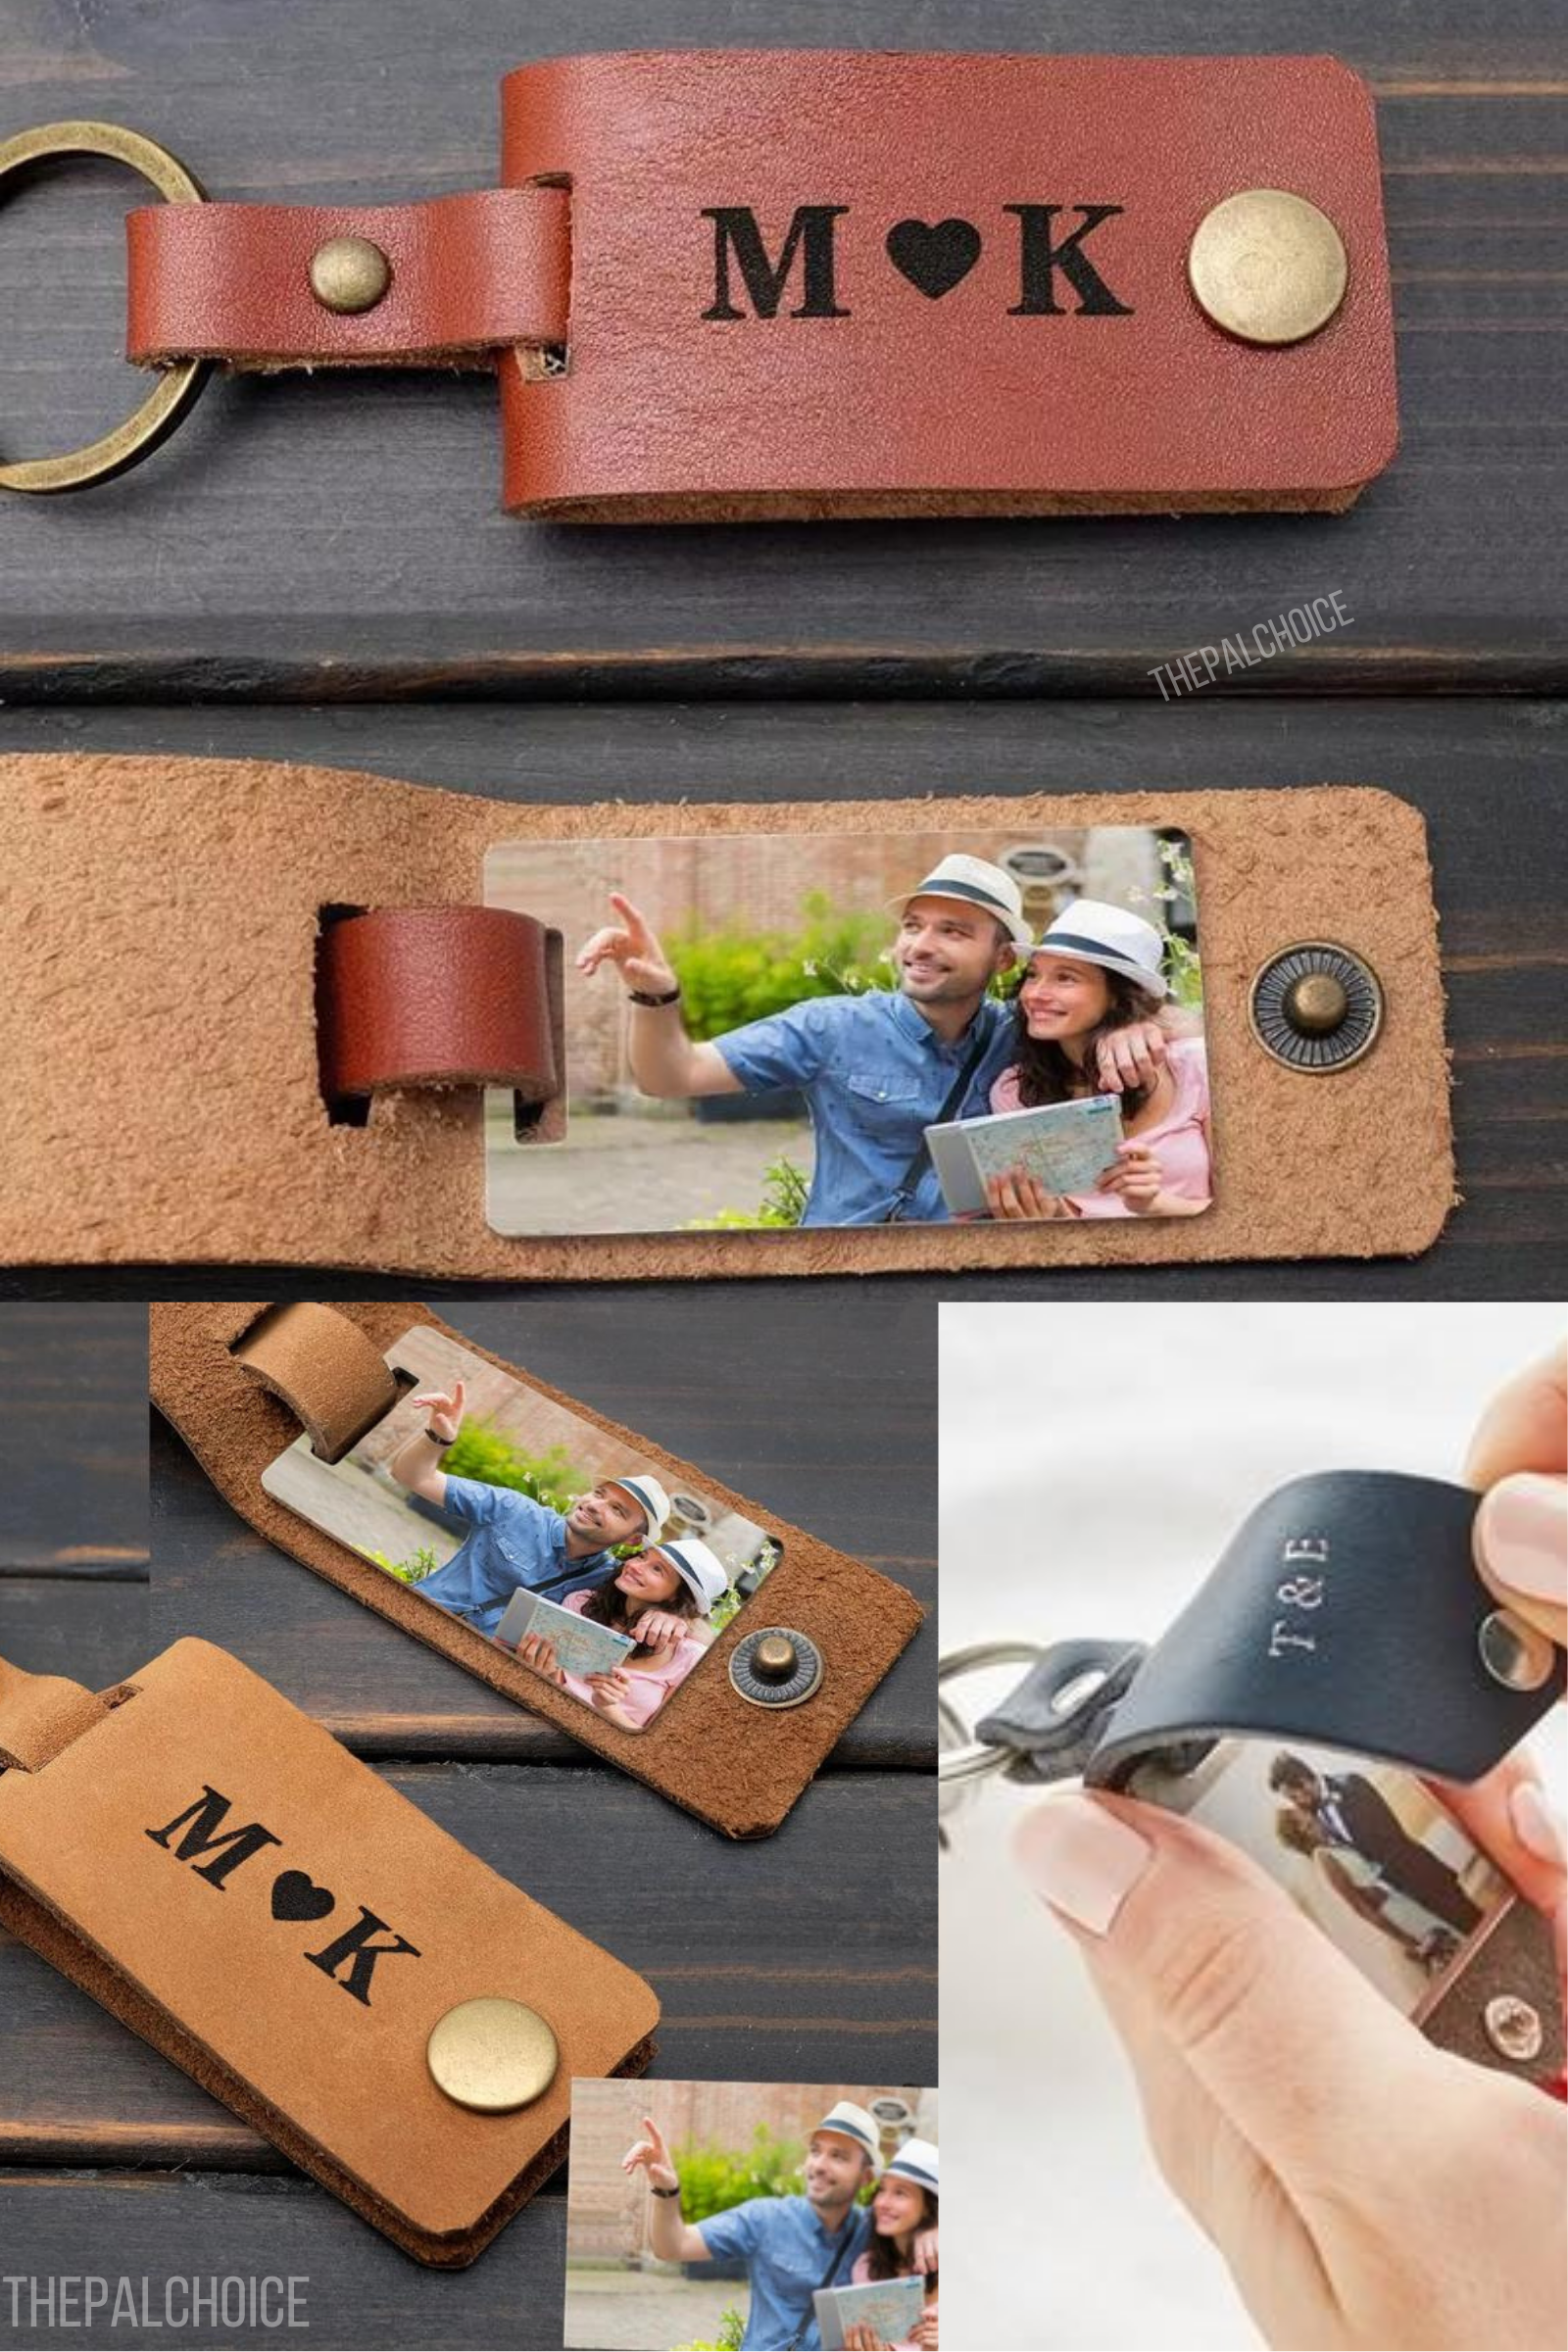 Your favourite photo is directly printed onto the stainless steel insert and this is enclosed in the leather case, making a subtle yet stylish heartfelt gift that can be taken wherever you go. #creativegifts #anniversarygifts #giftsforhim #giftsforhusband #firstanniversarygifts #giftsforboyfriend #valentinesgifts #christmasgifts